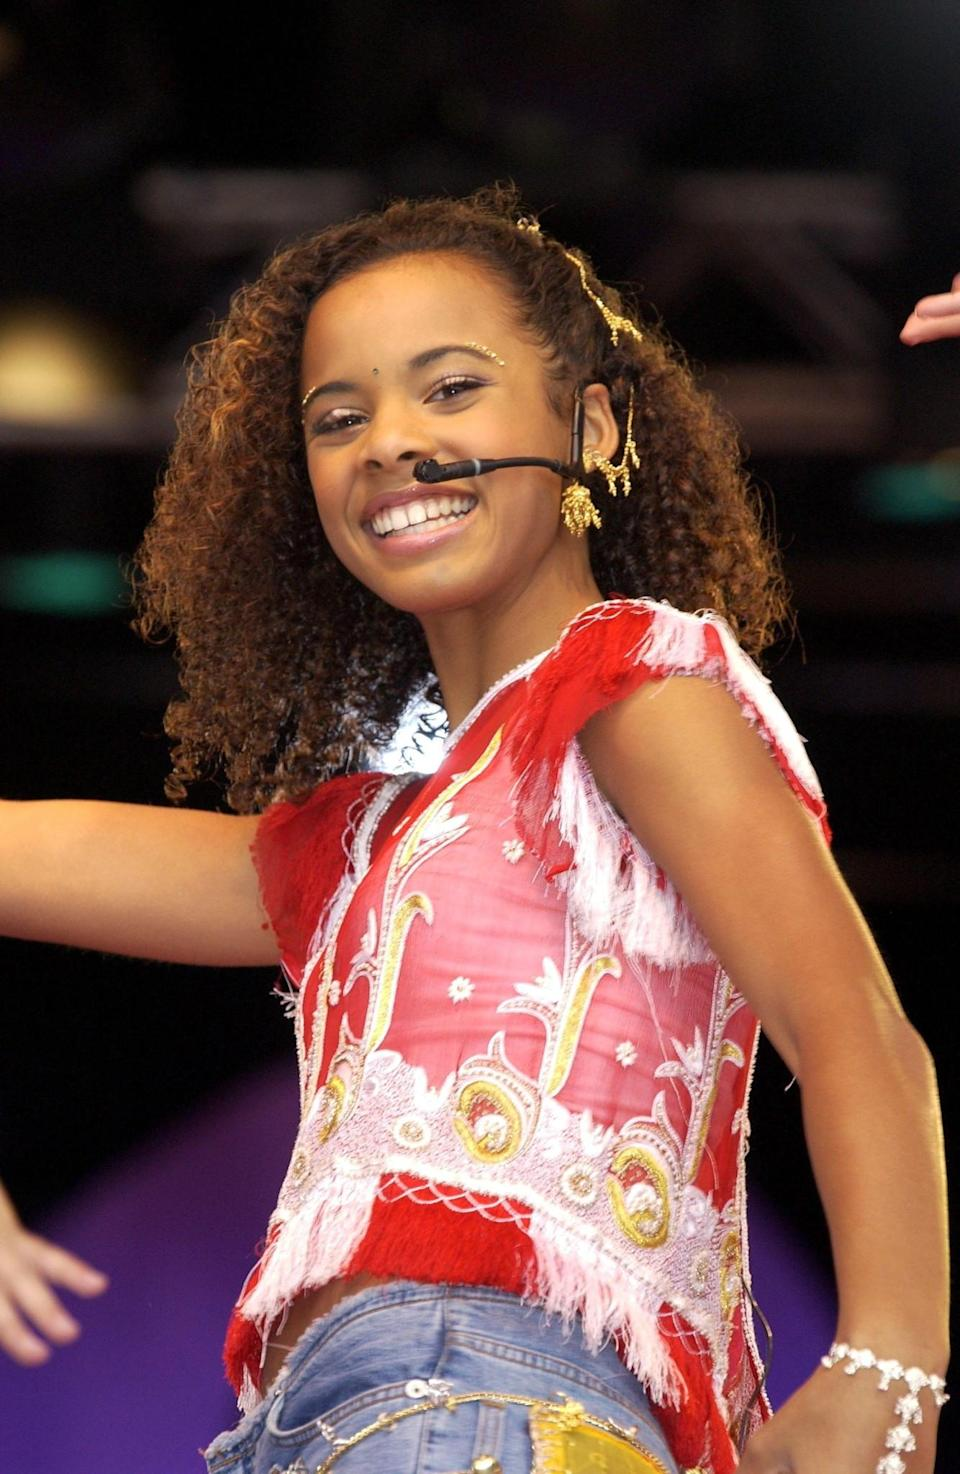 <p>Then: Another stand-out member of S Club Juniors was Rochelle, with her trademark curls and big smile. [Photo: Getty] </p>